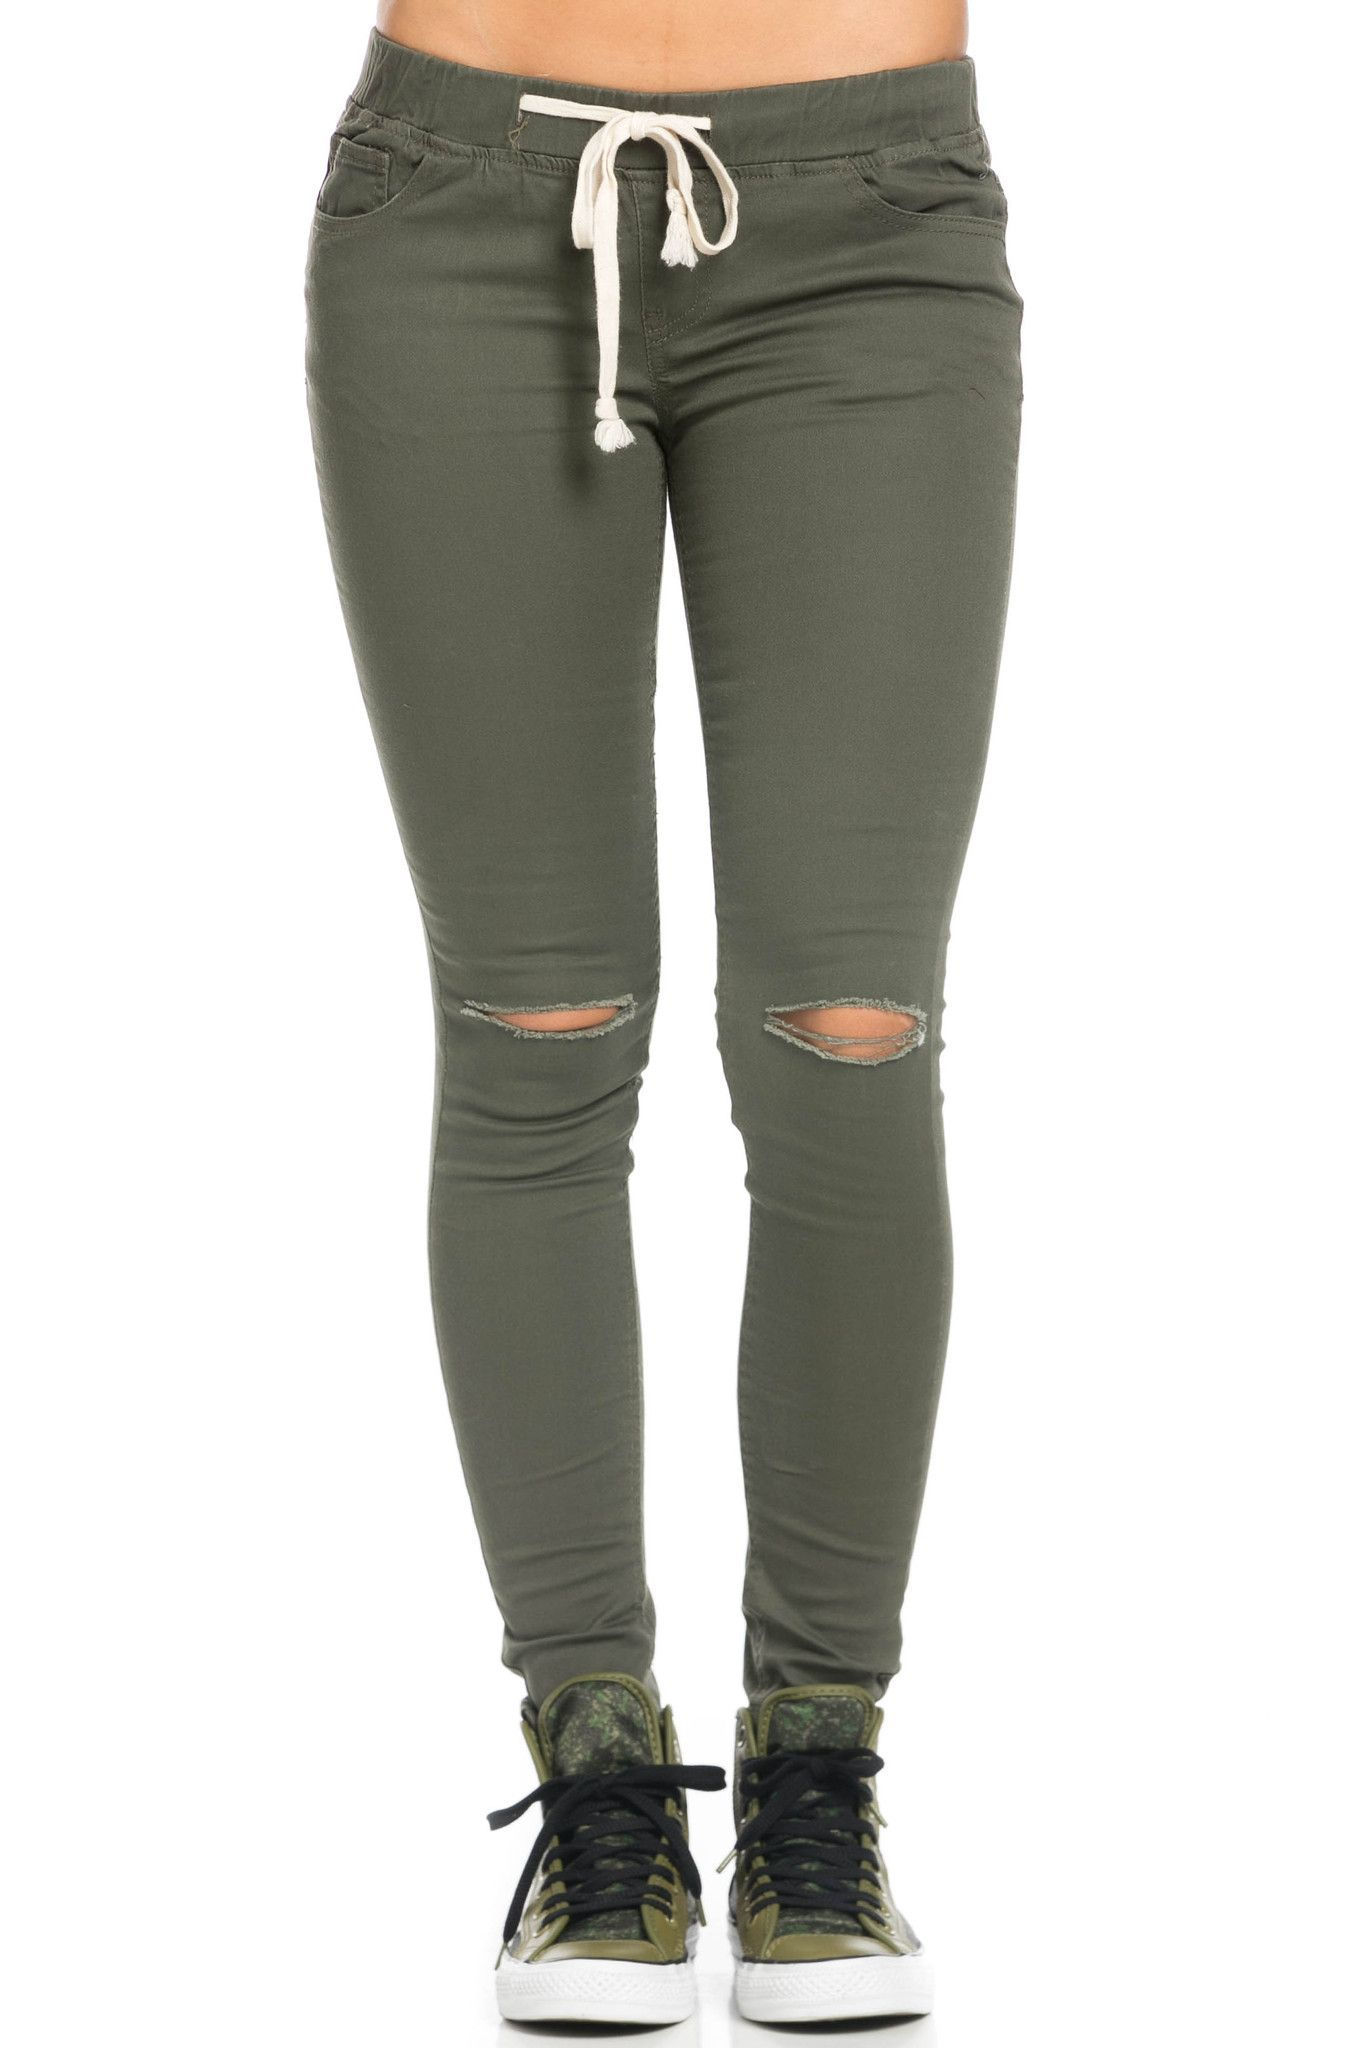 b9535b2216935b Distressed at the knee. A skinny, olive colored mid-rise jogger jean  featuring…